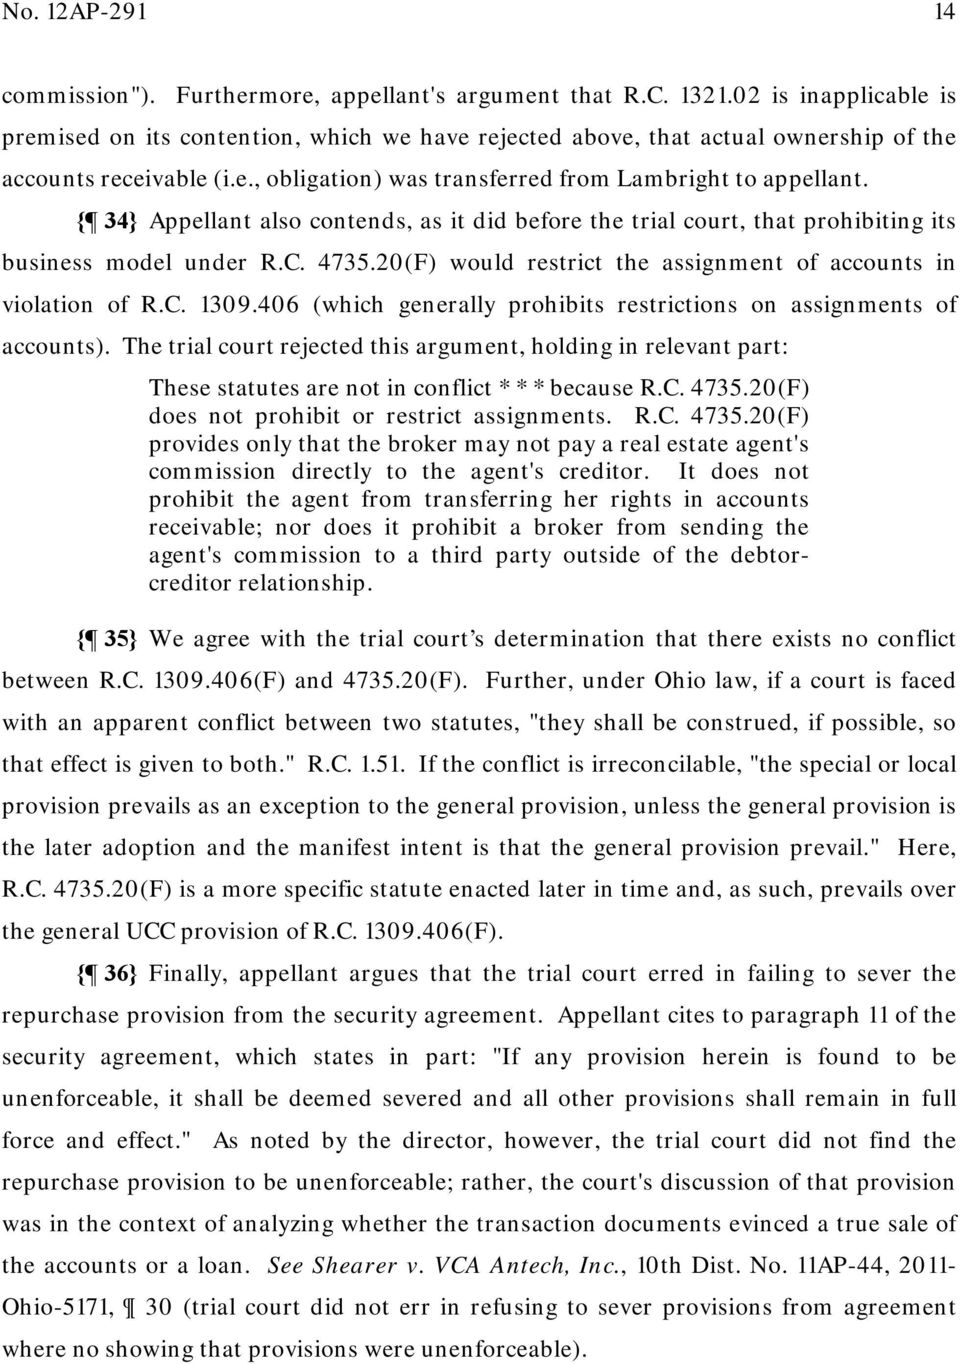 { 34} Appellant also contends, as it did before the trial court, that prohibiting its business model under R.C. 4735.20(F) would restrict the assignment of accounts in violation of R.C. 1309.